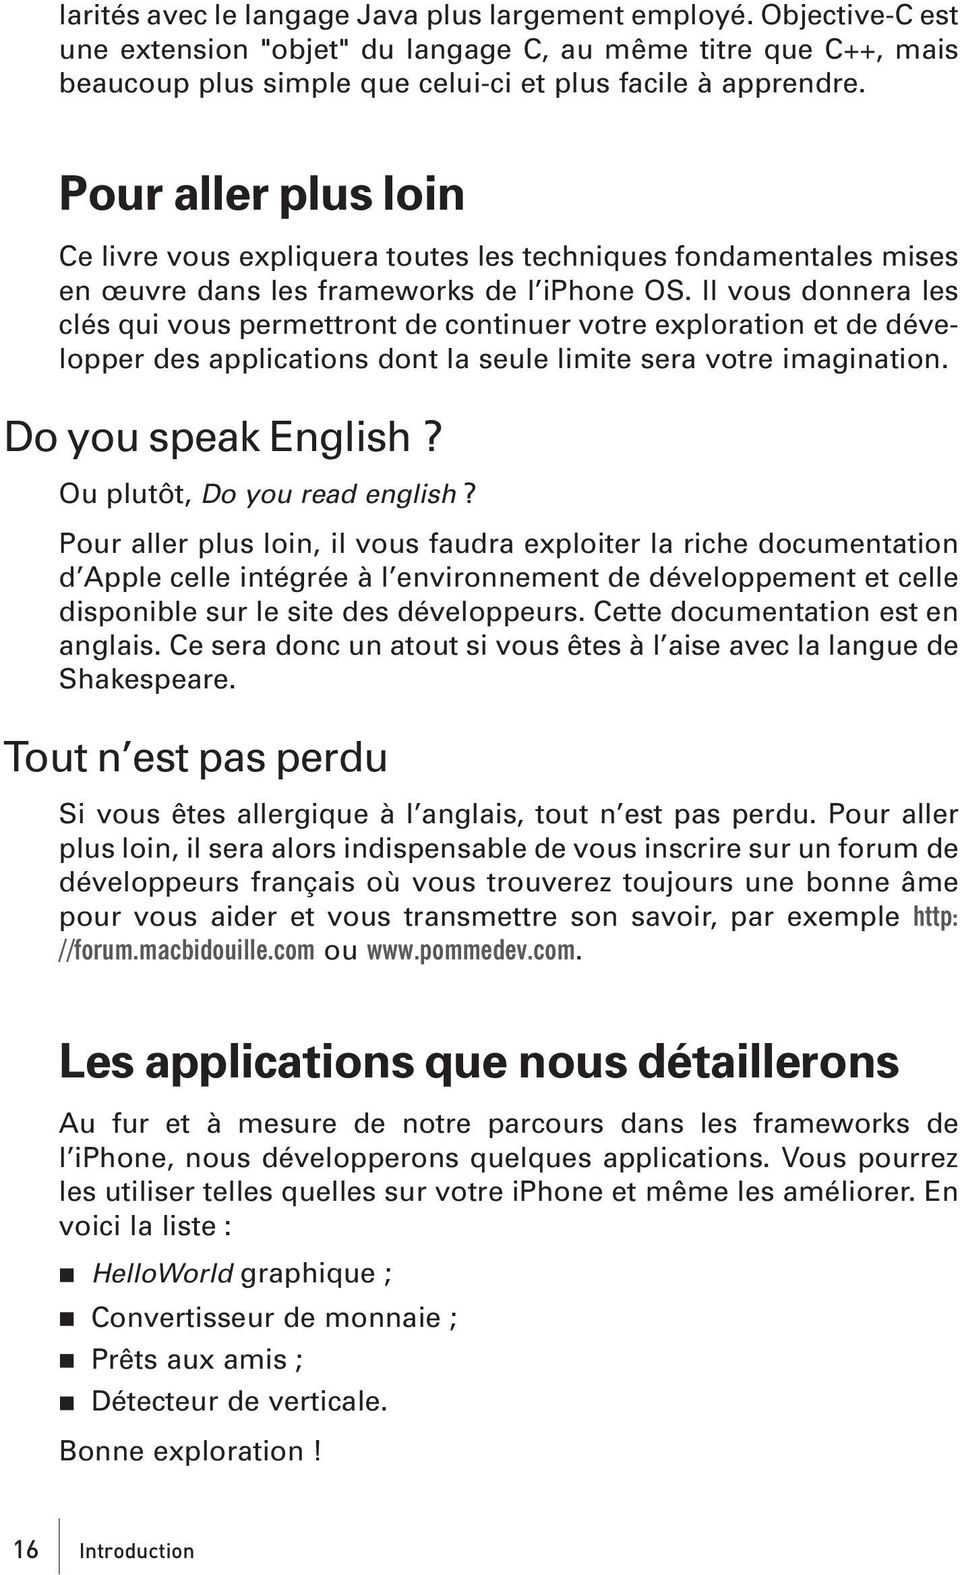 Il vous donnera les clés qui vous permettront de continuer votre exploration et de développer des applications dont la seule limite sera votre imagination. Do you speak English?